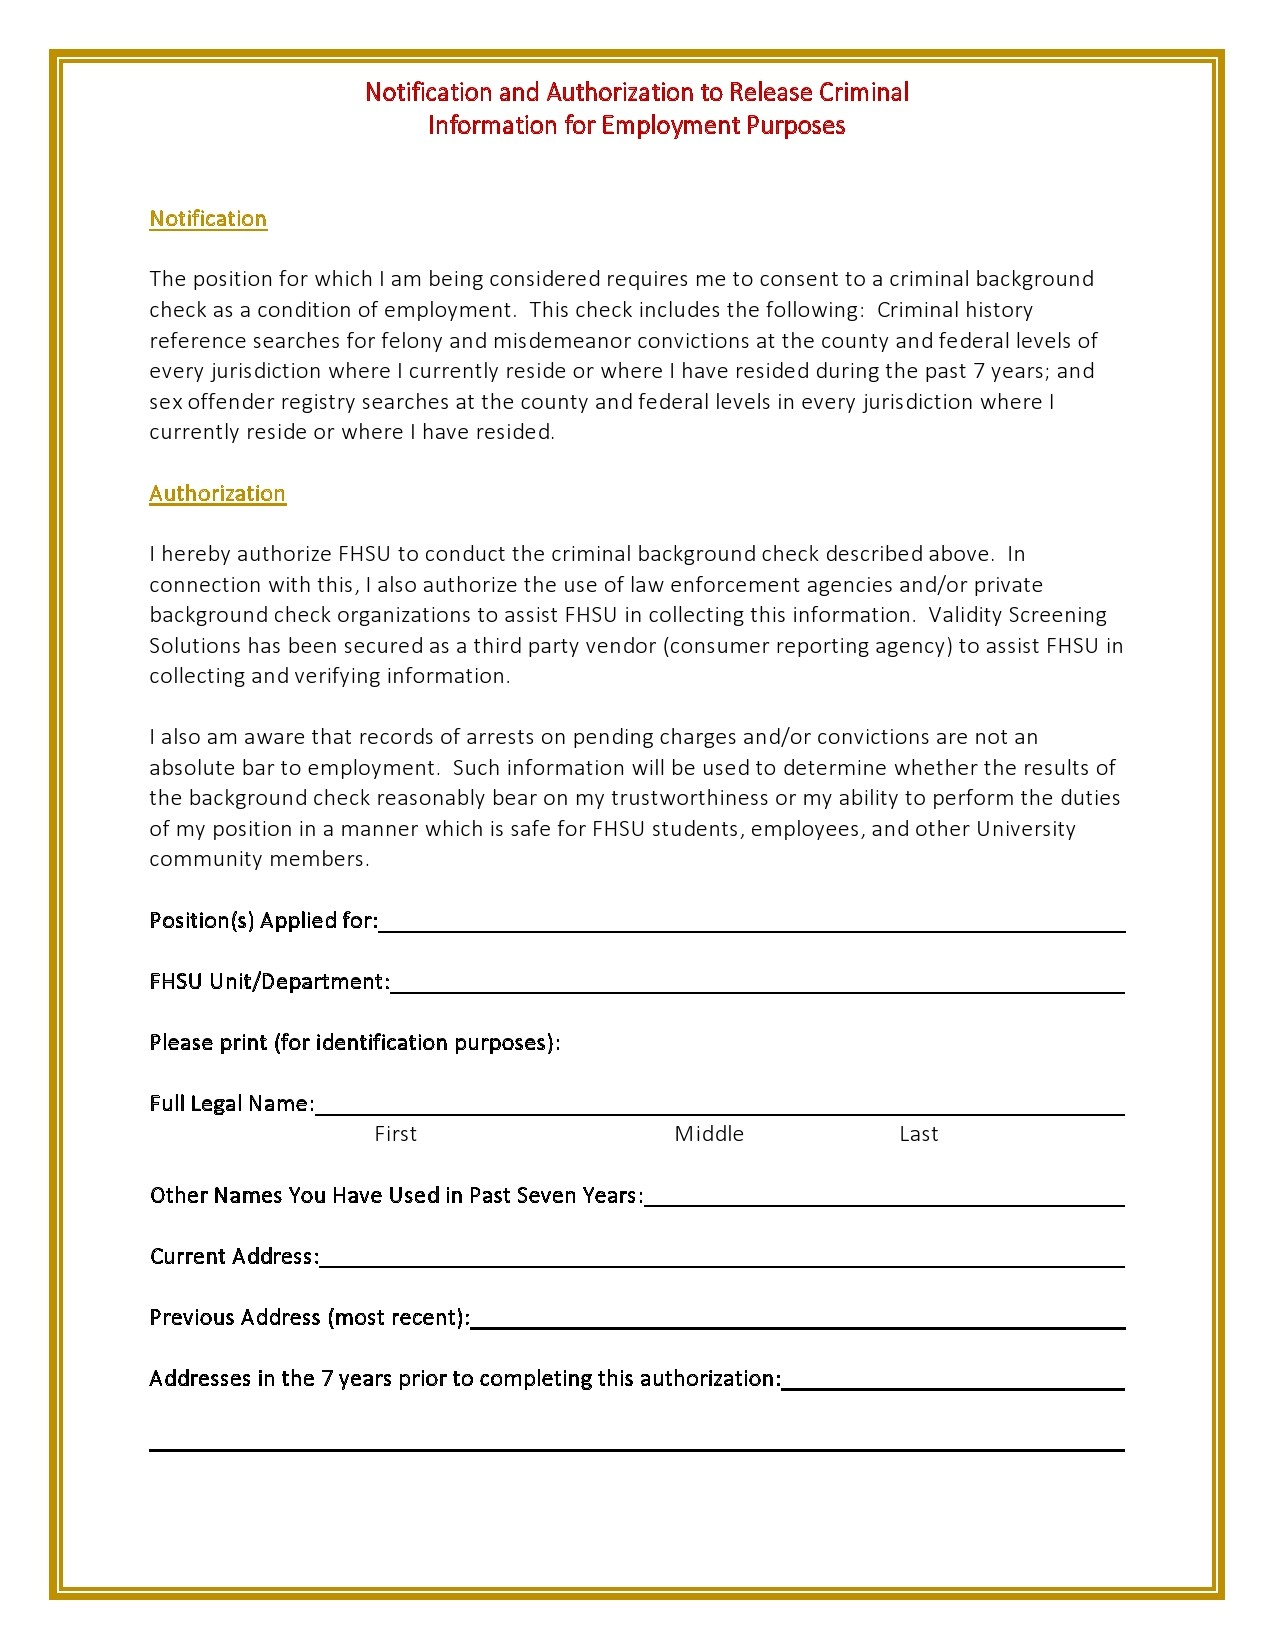 Free background check form 08